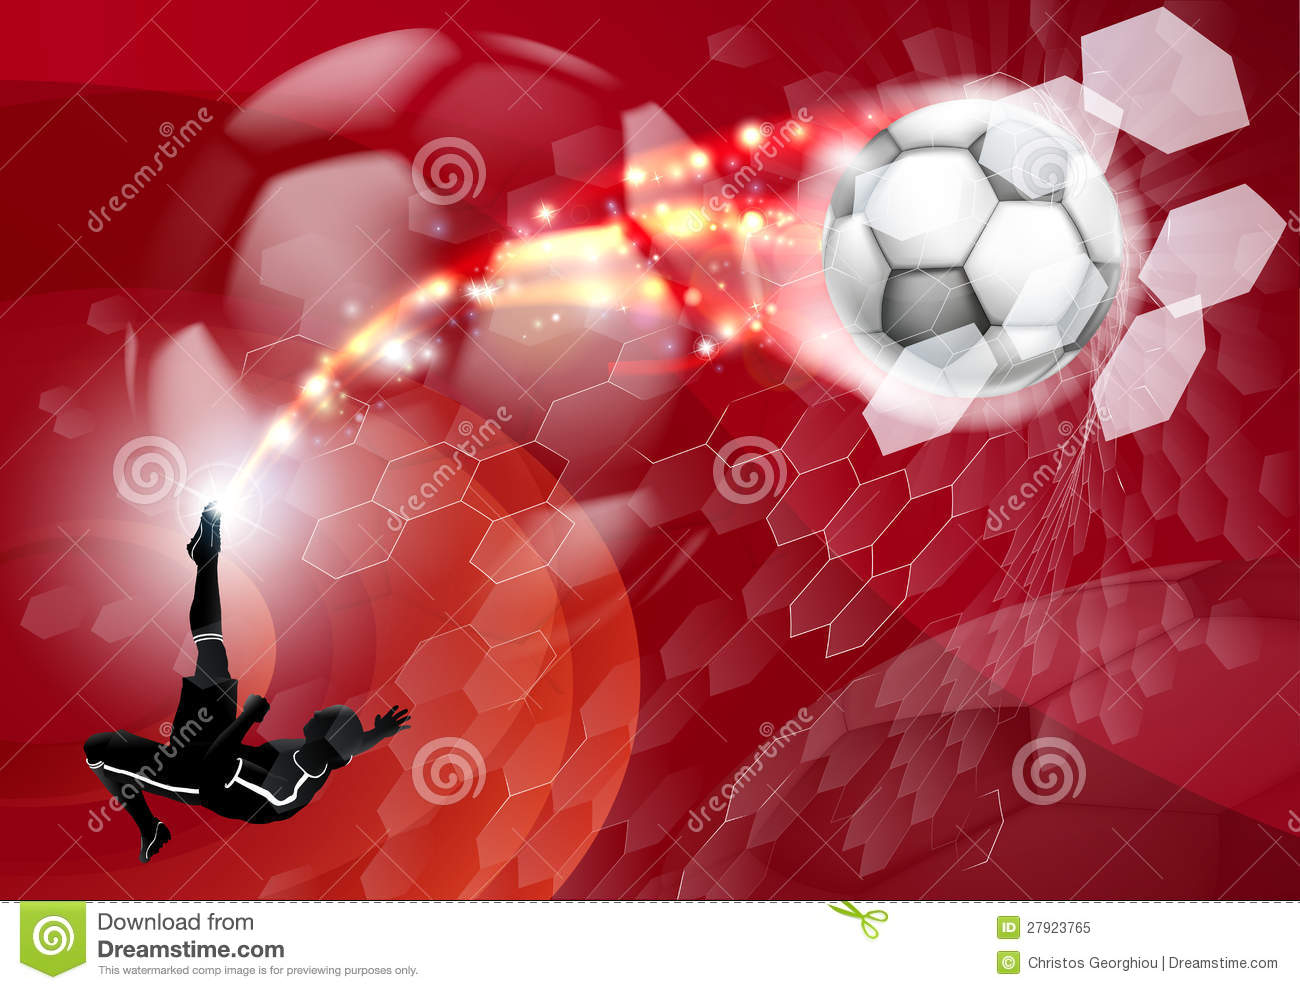 Abstract Sports Background Royalty Free Stock Image: Abstract Soccer Sport Background Royalty Free Stock Photo